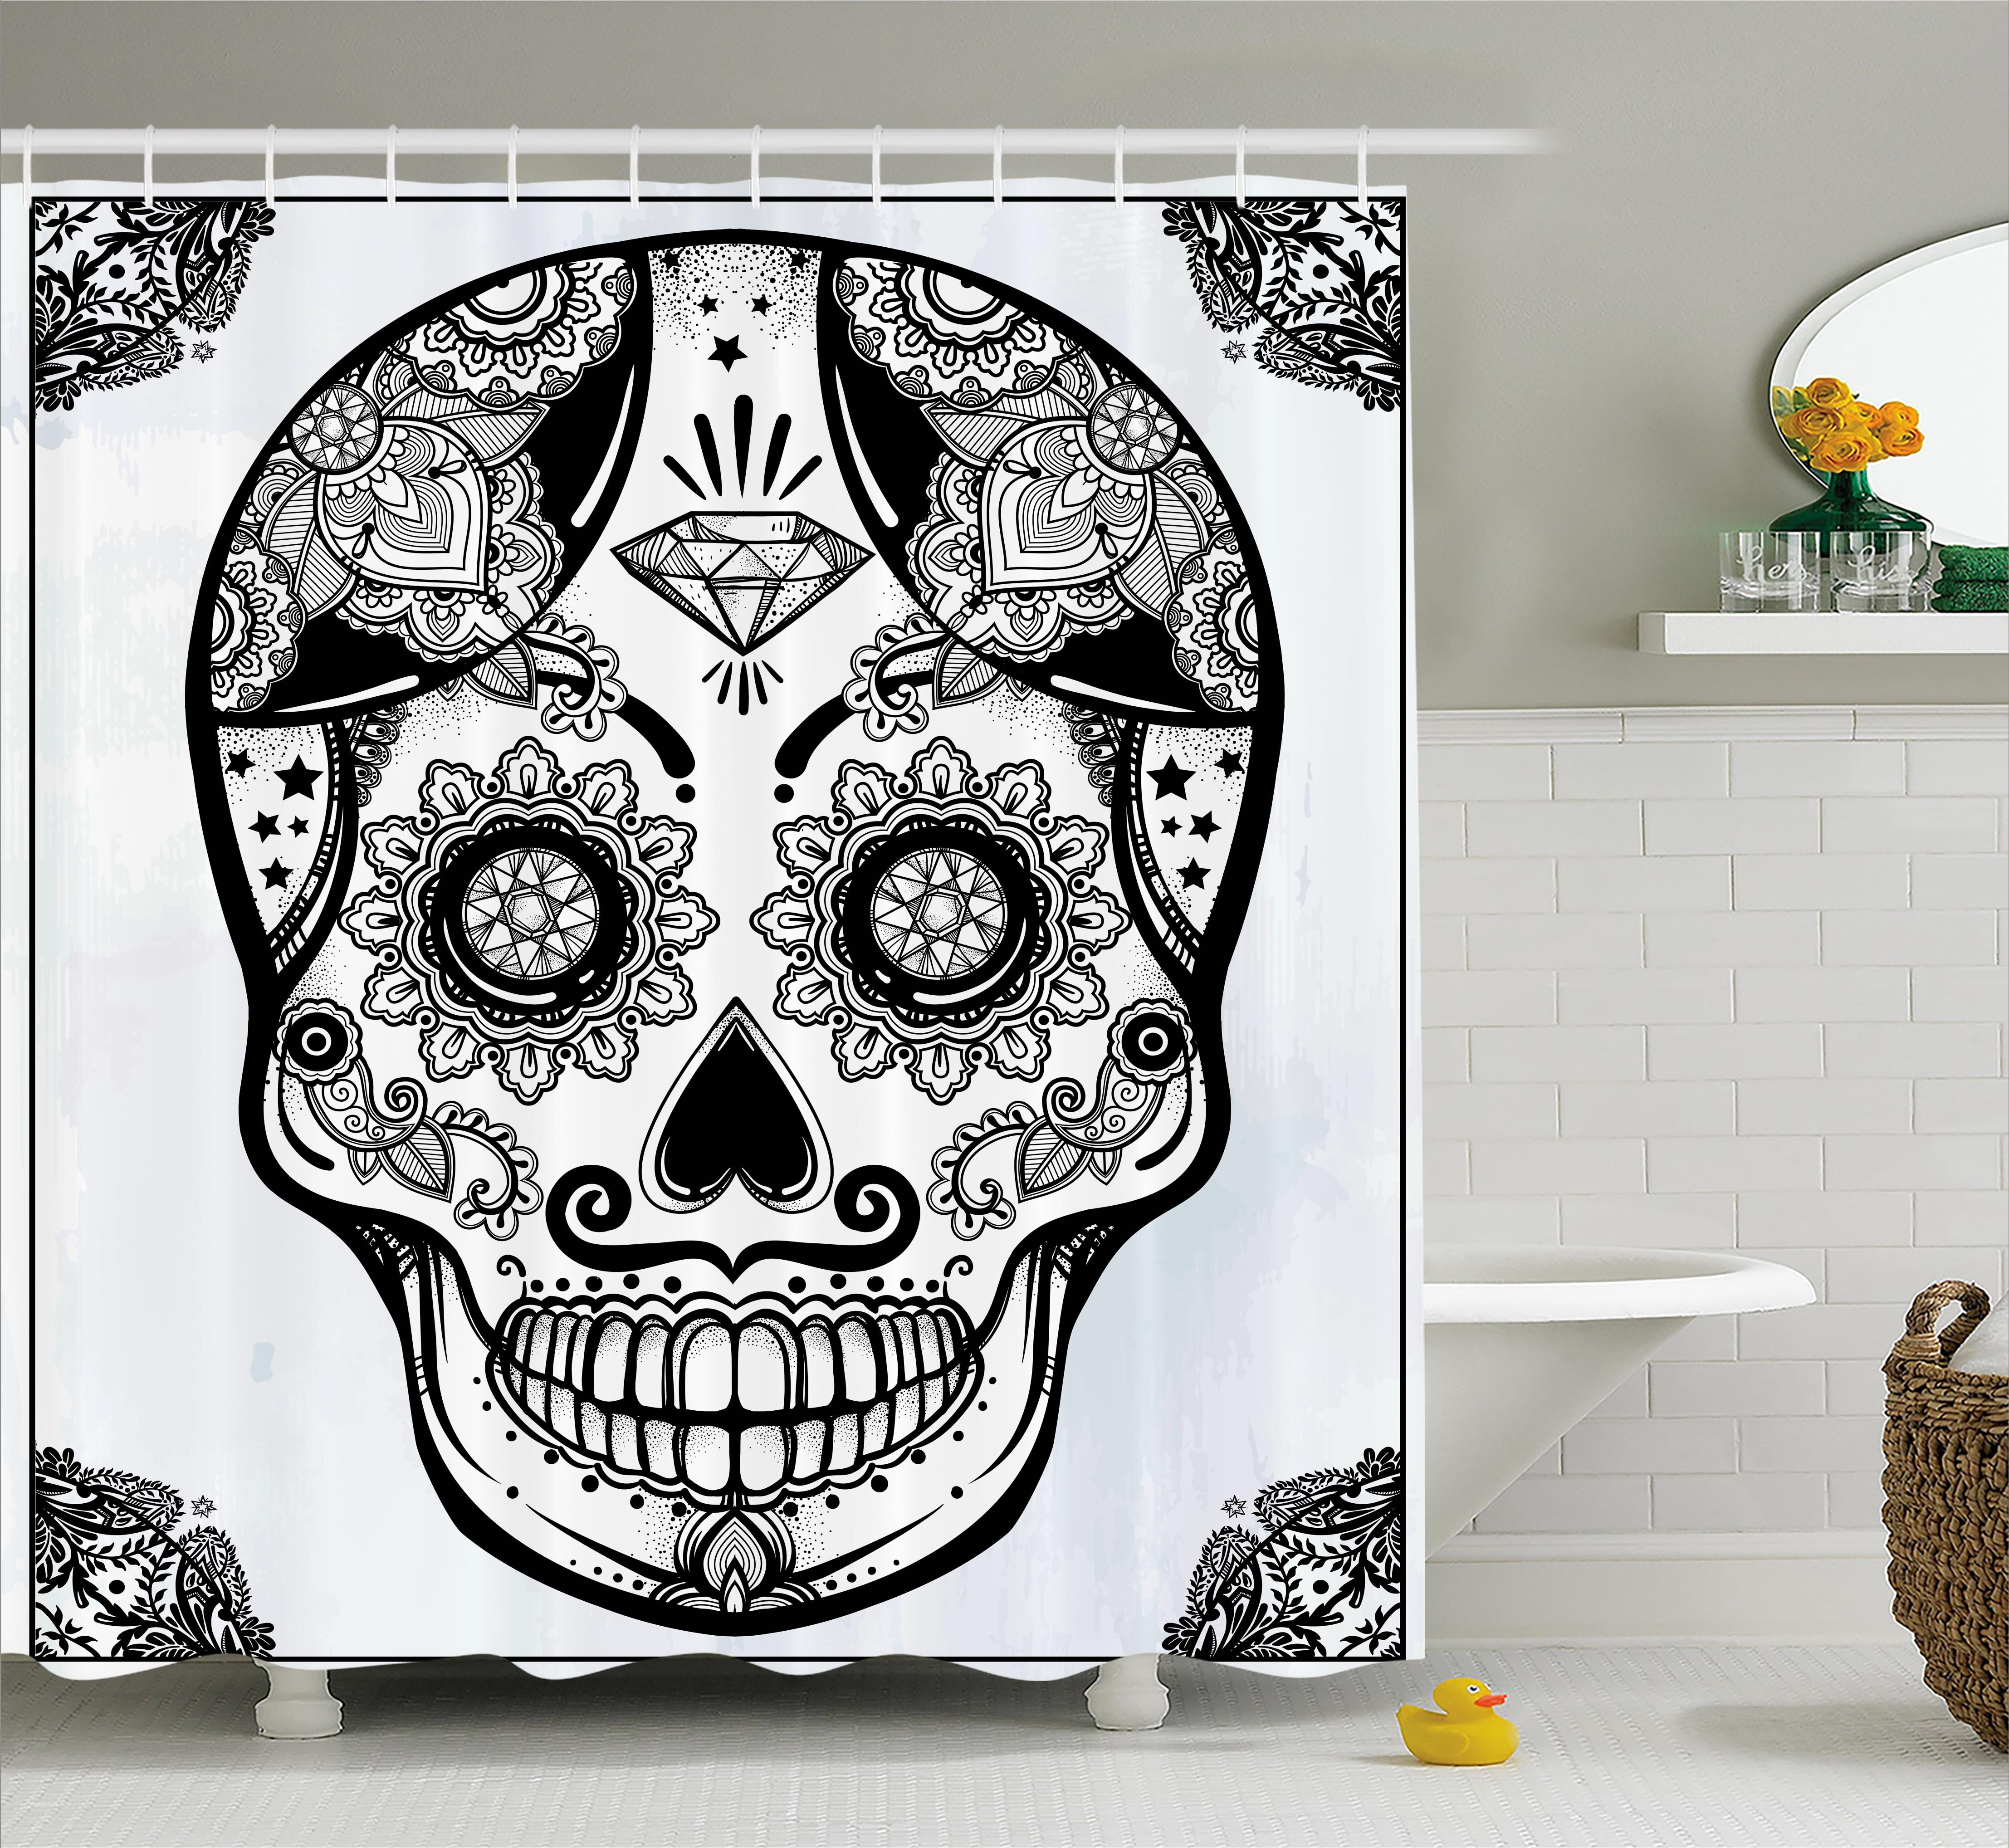 East Urban Home Keeble Day Of The Dead Holiday Sugar Skull Print With Floral Mandala Spanish Folk Art Shower Curtain